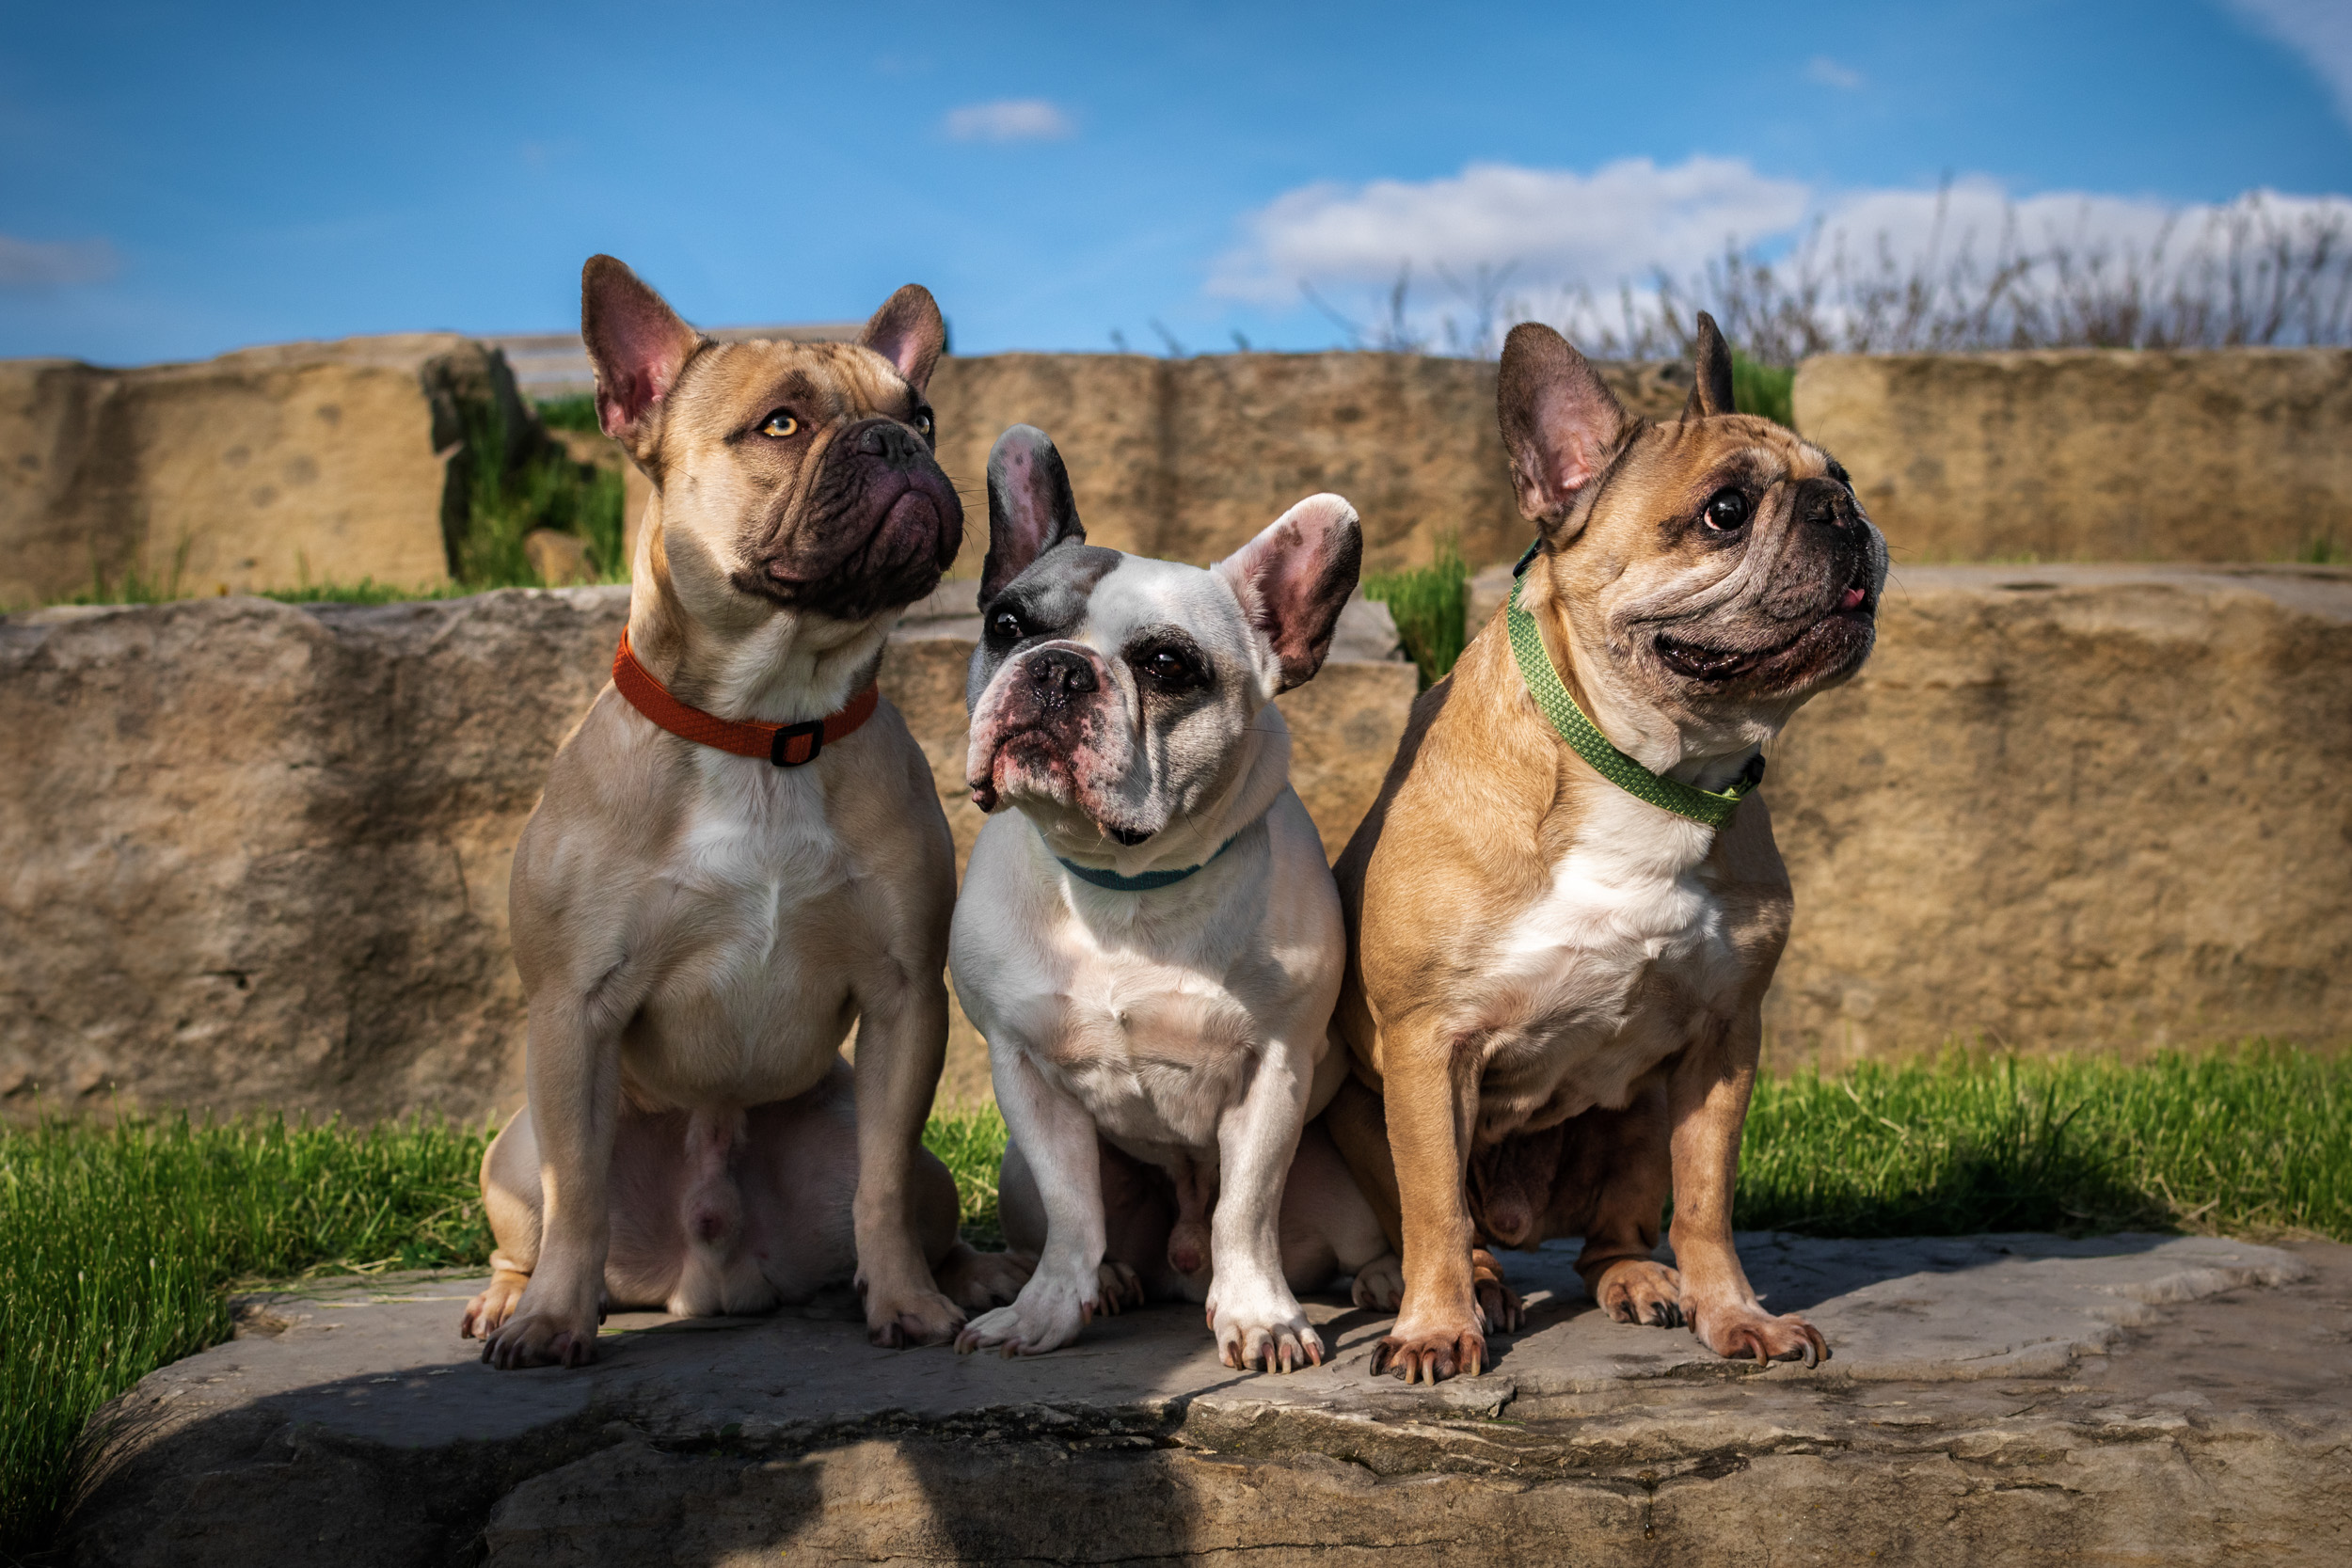 frenchie dogs - M's animals Photography